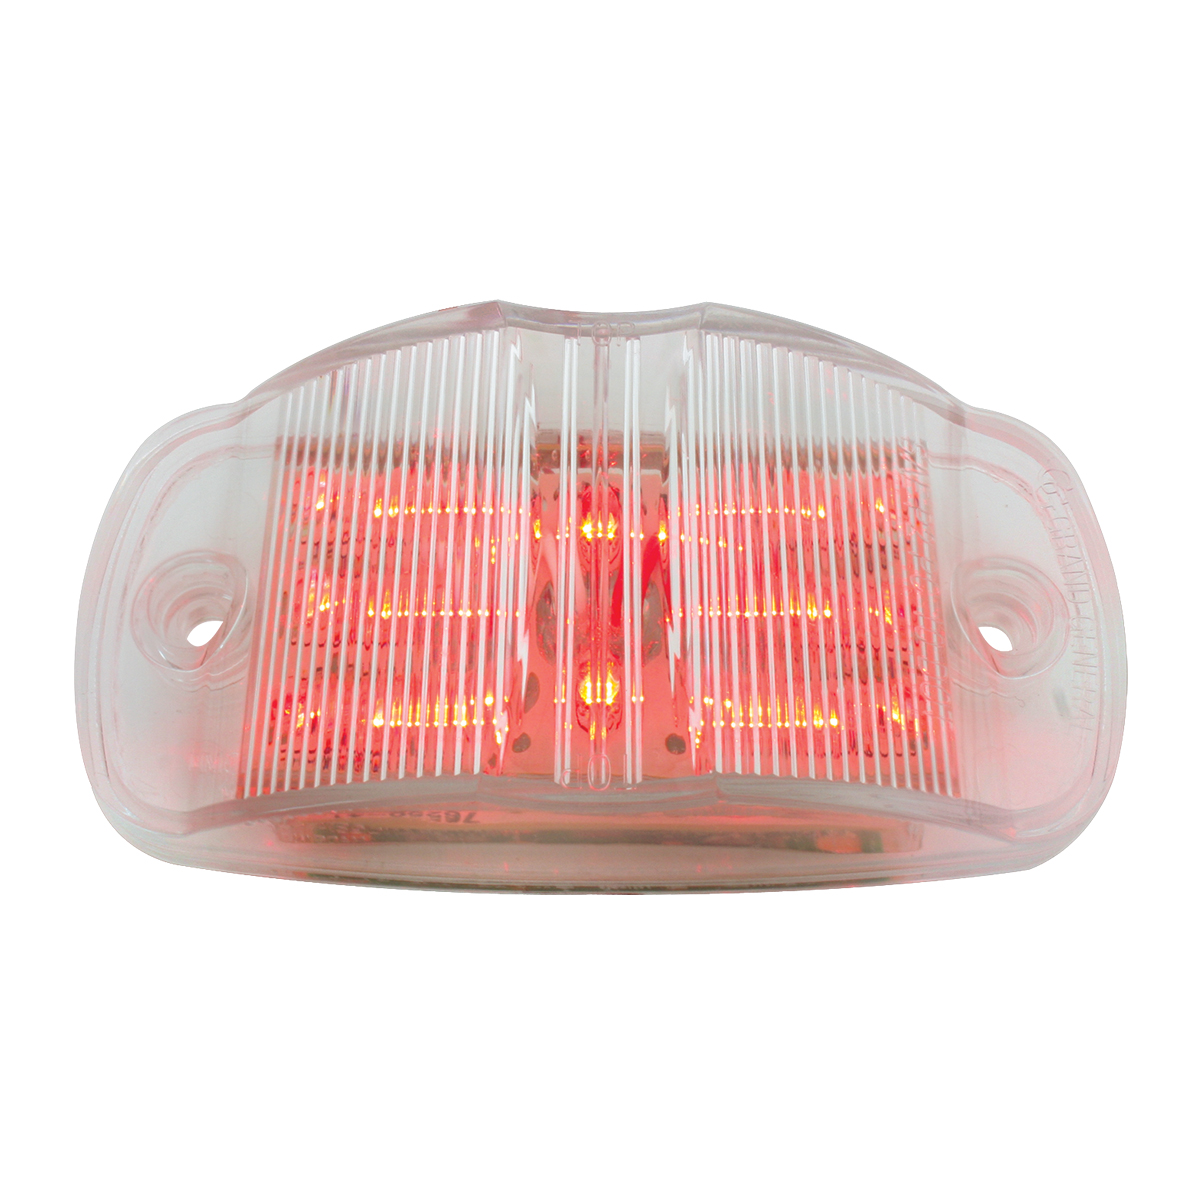 75163 Rectangular Camel Back Wide Angle Dual Function LED Light